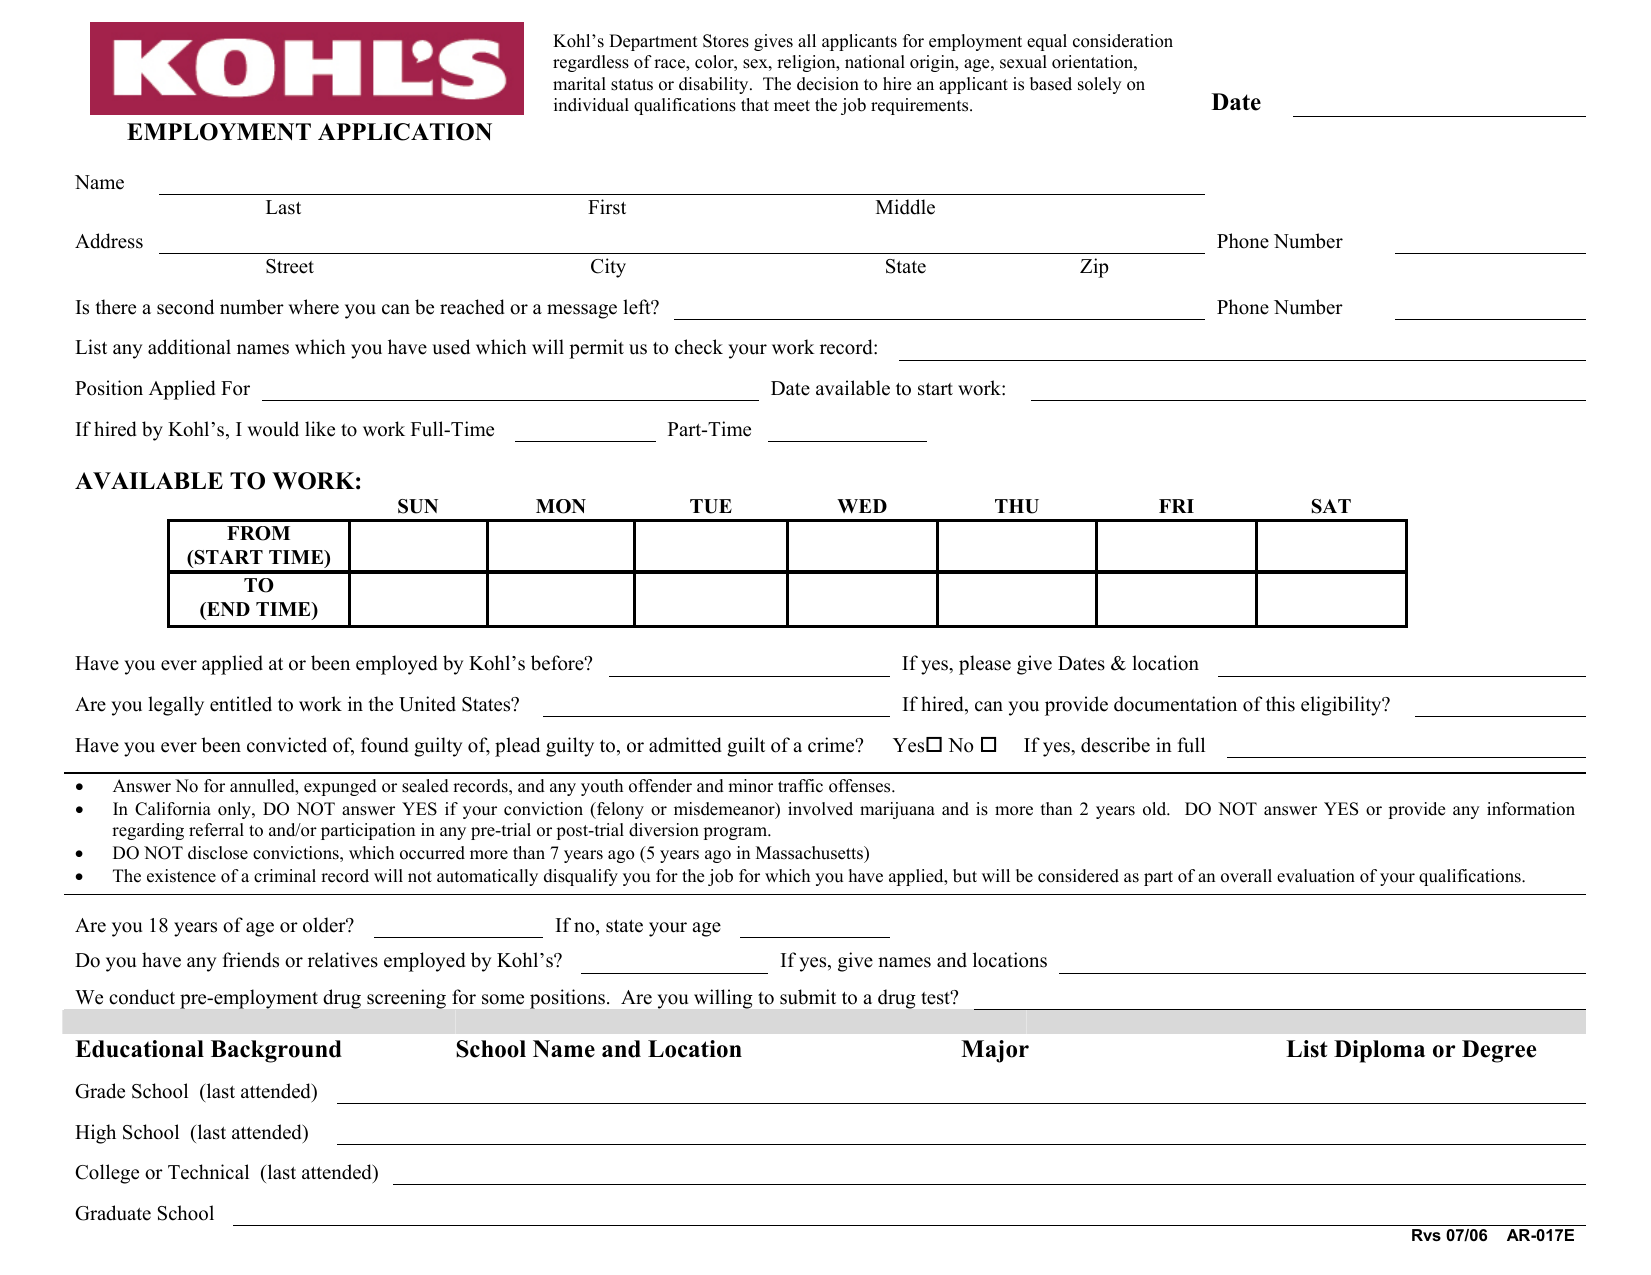 Kohls-job-application-form.pdf Job Application Form Personal Statement on for nephrology, format for, examples for it, examples for education, examples for hospitality, for business, examples for custodian, examples for business, resume for administrative, examples apply for, for state, summary examples for, example landscape,